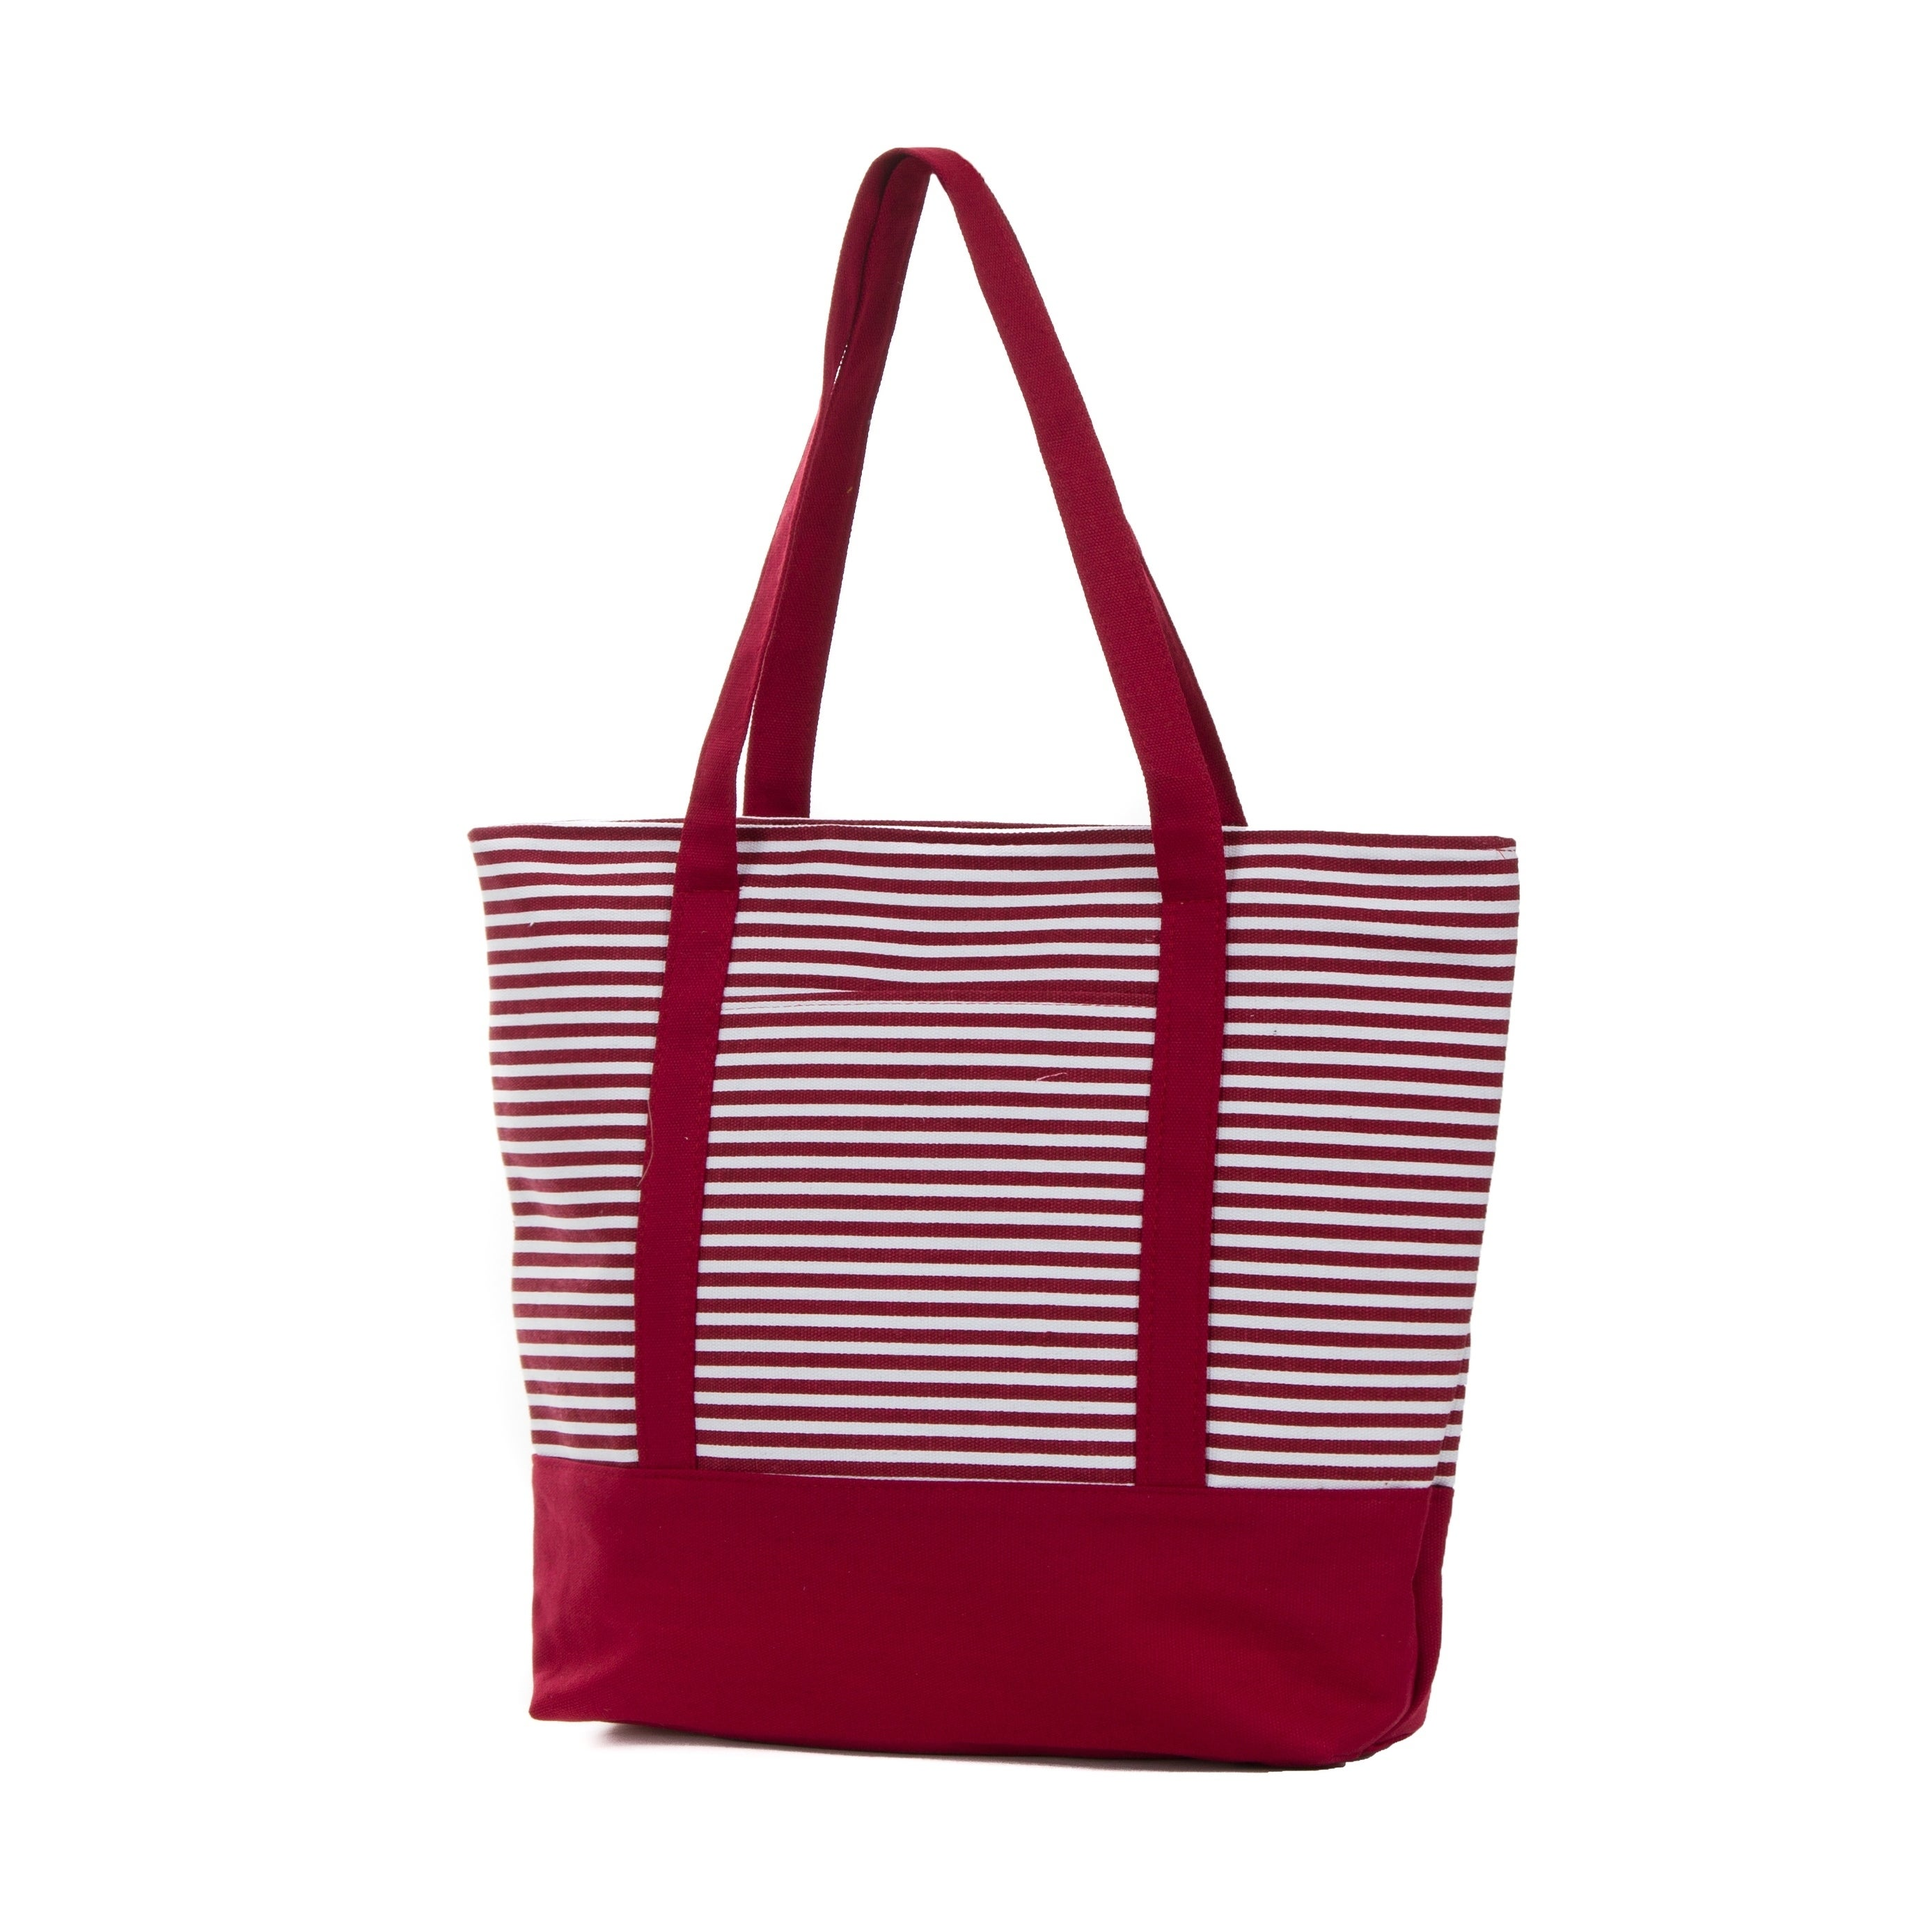 ad8d1d2ef Shop Canvas Tote Bag, Striped Canvas Bag, Beach Bag, Shopping Tote - Free  Shipping On Orders Over $45 - Overstock - 26290024